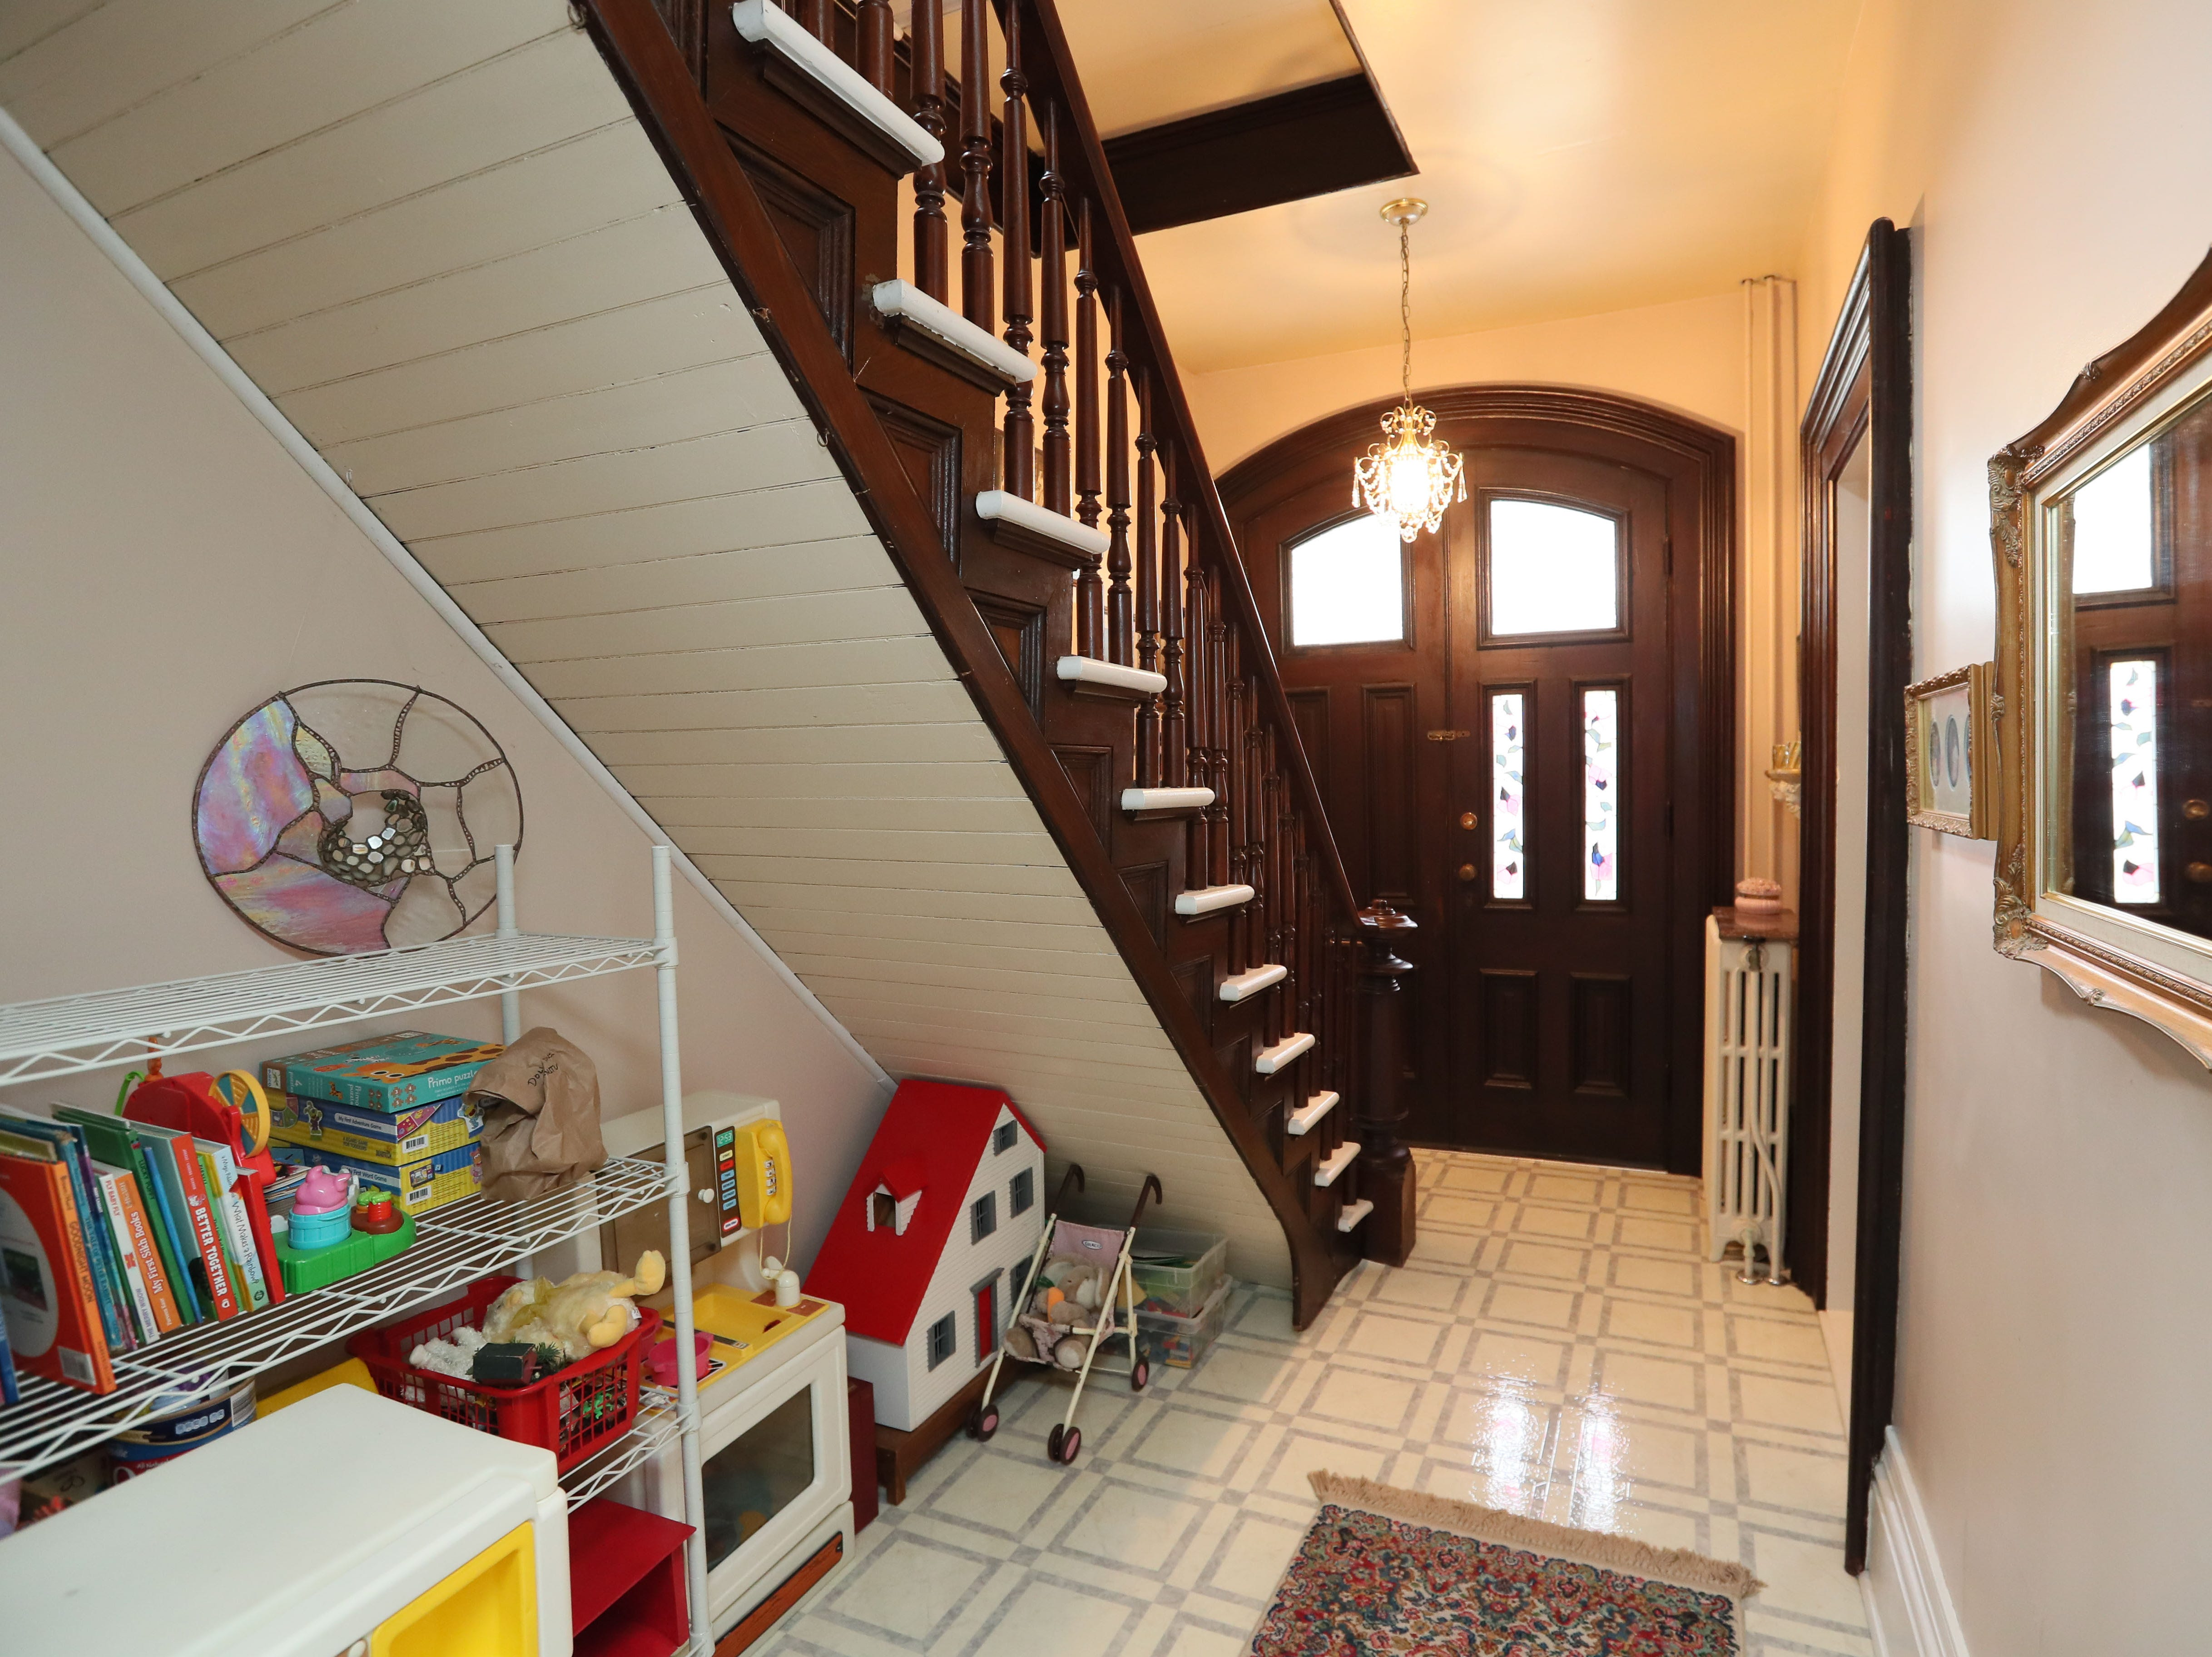 The space under a staircase to the second floor has toys for the grandkids to use.